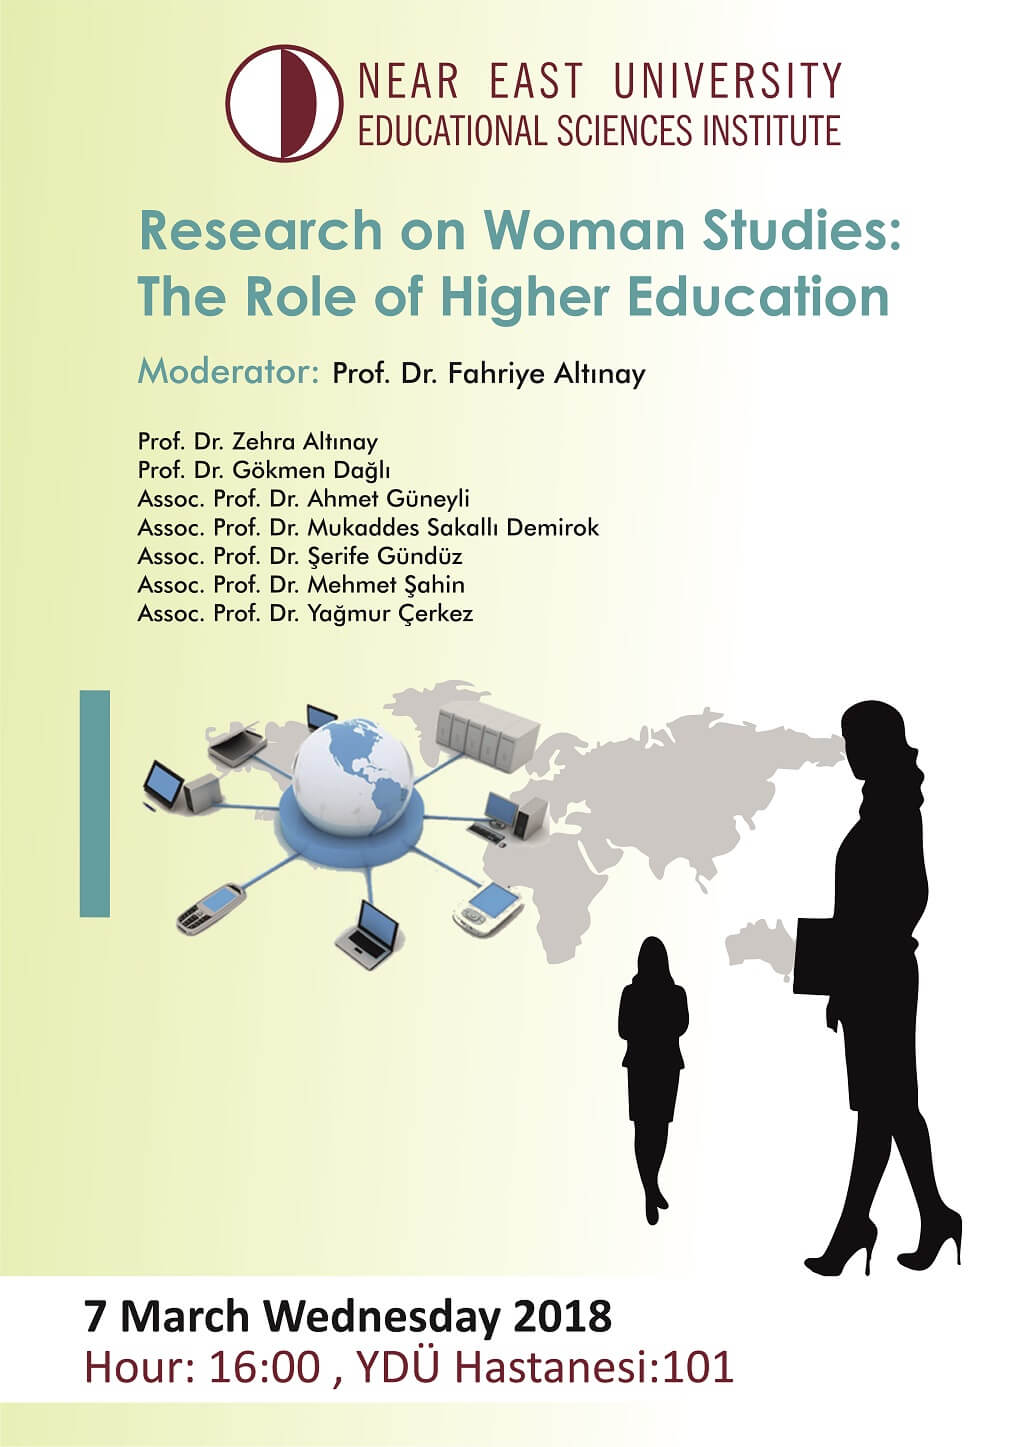 Research on Woman Studies: The Role of Higher Education